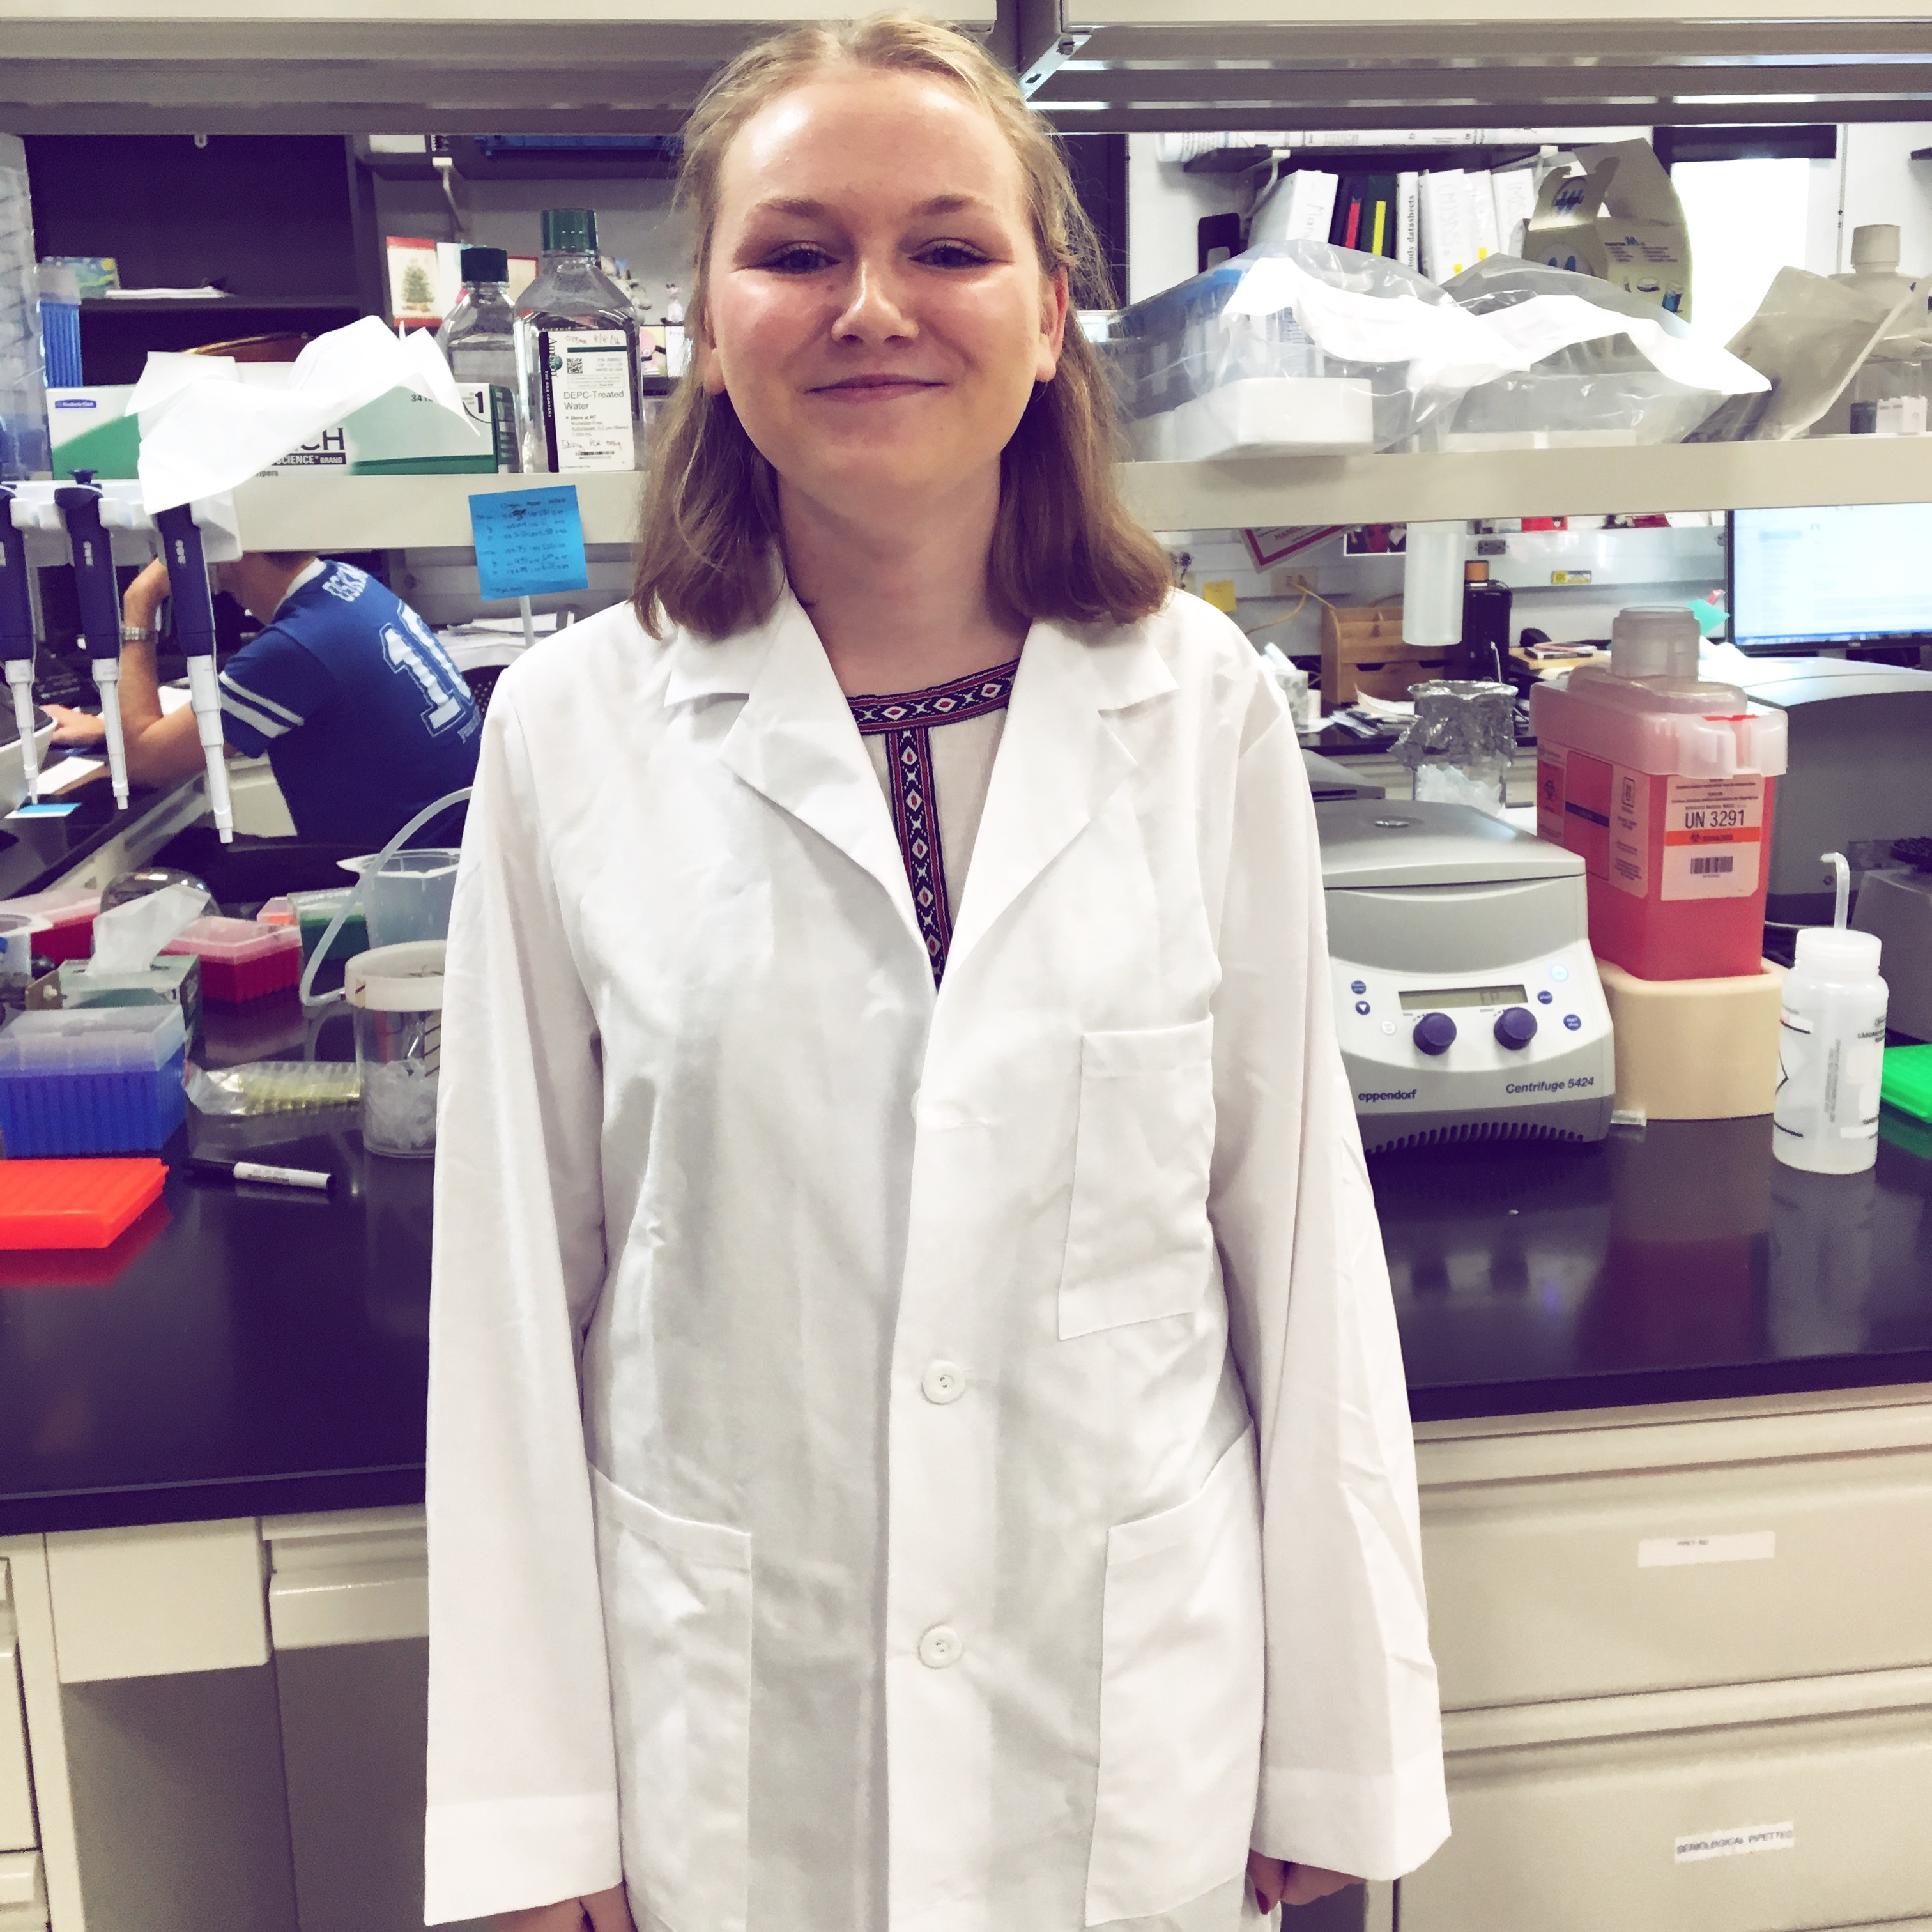 Abigail Byford, MBiol Neuroscience with a Study Year Abroad